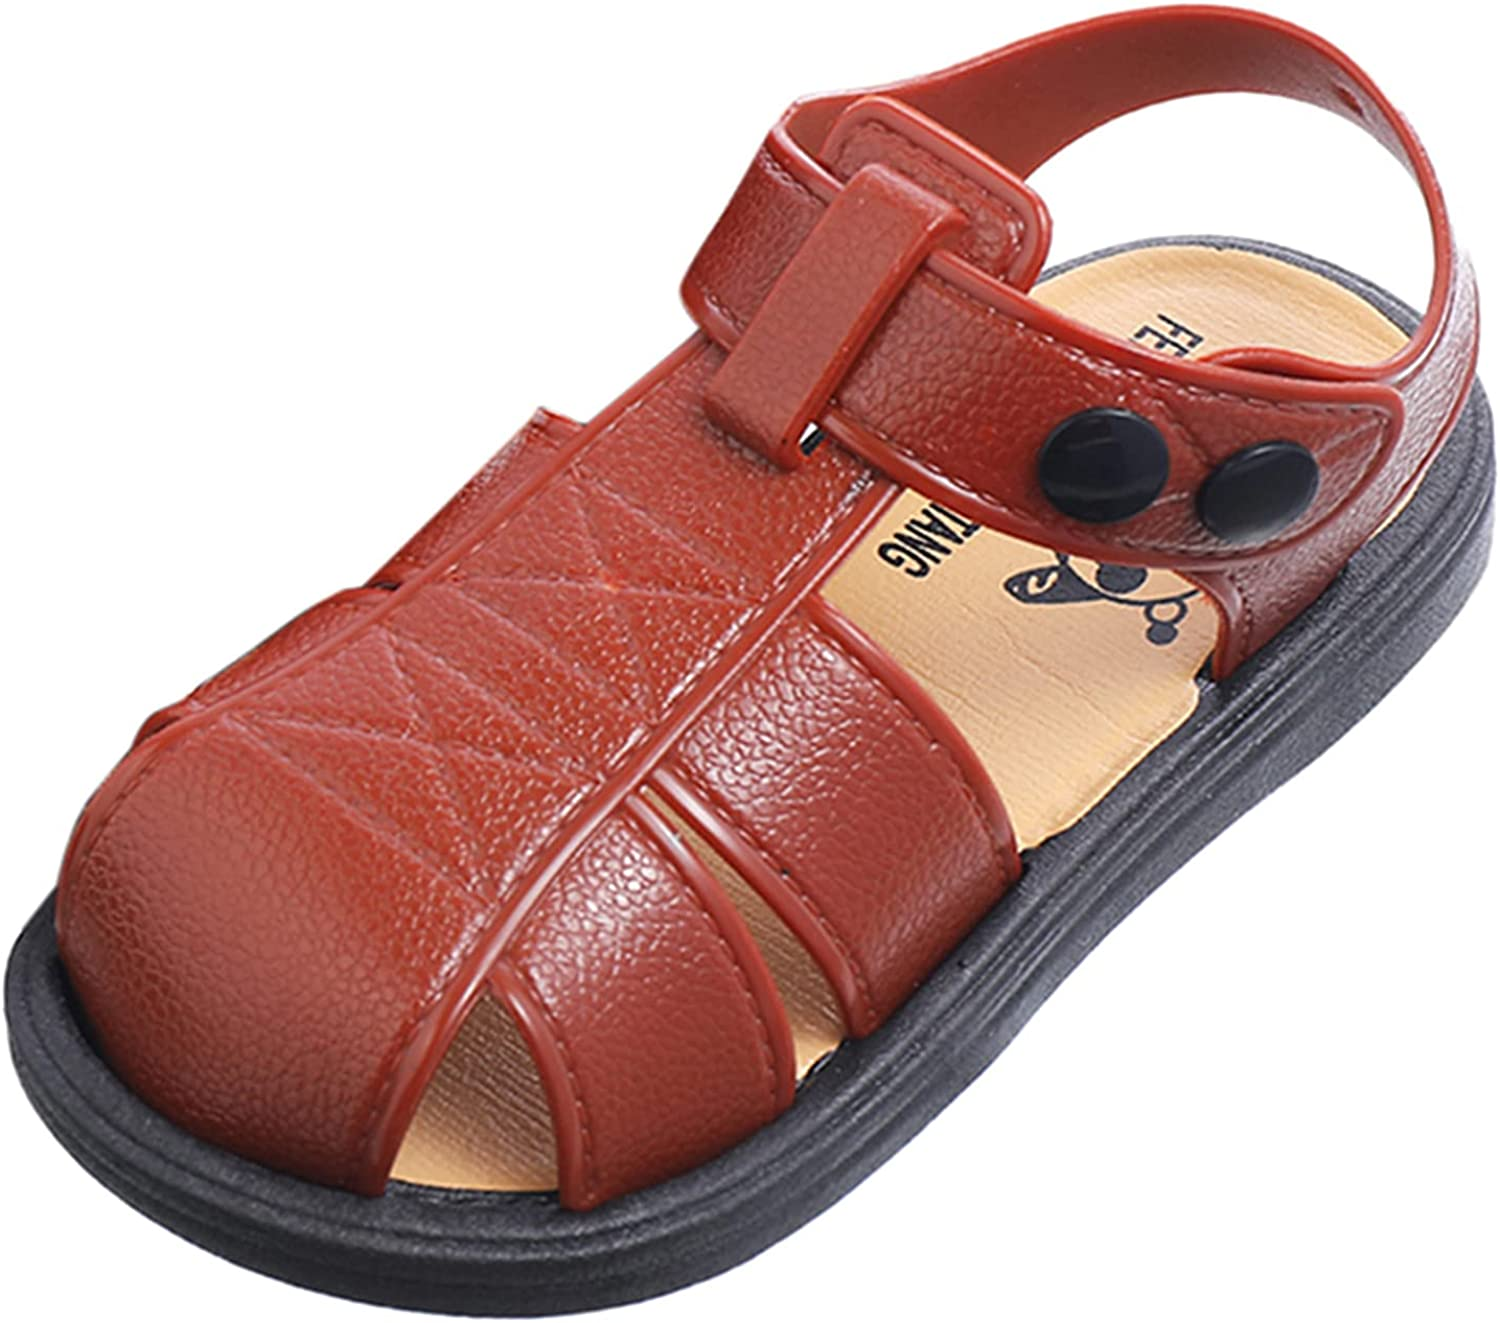 Sport Sandal Lightweight Soft Sole Closed Toe Protects Feet Long Lasting Durability 9-12 Months Infant and Toddler Layette Sets Black Wedge Sandals Summer